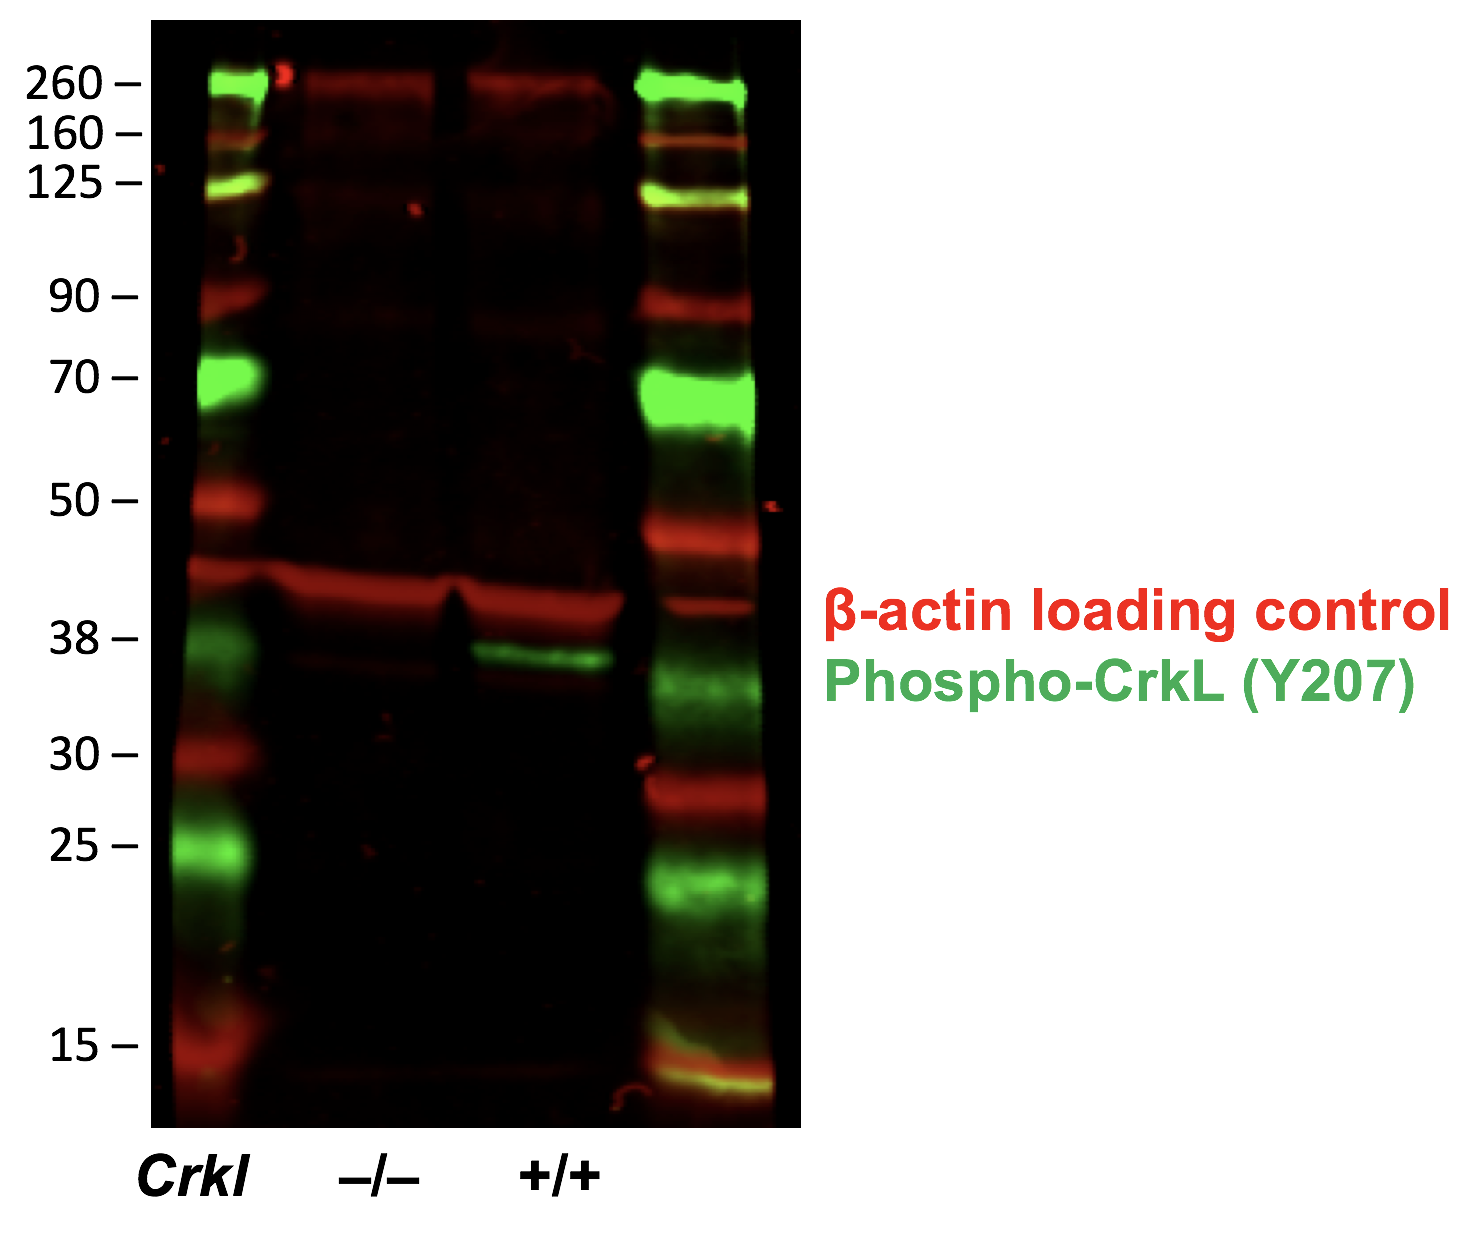 Fig-5: Western blot of E10.5 mouse wild-type (+/+) or Crkl knock out (-/-) whole embryos. The red channel was stained using a B-actin loading control and the green channel was stained using 1:500 dilution of Phospho-CrkL (Tyr207) antibody CrkLY207-G4. Phospho CrkL antibody staining is absent in the knock out lysate.